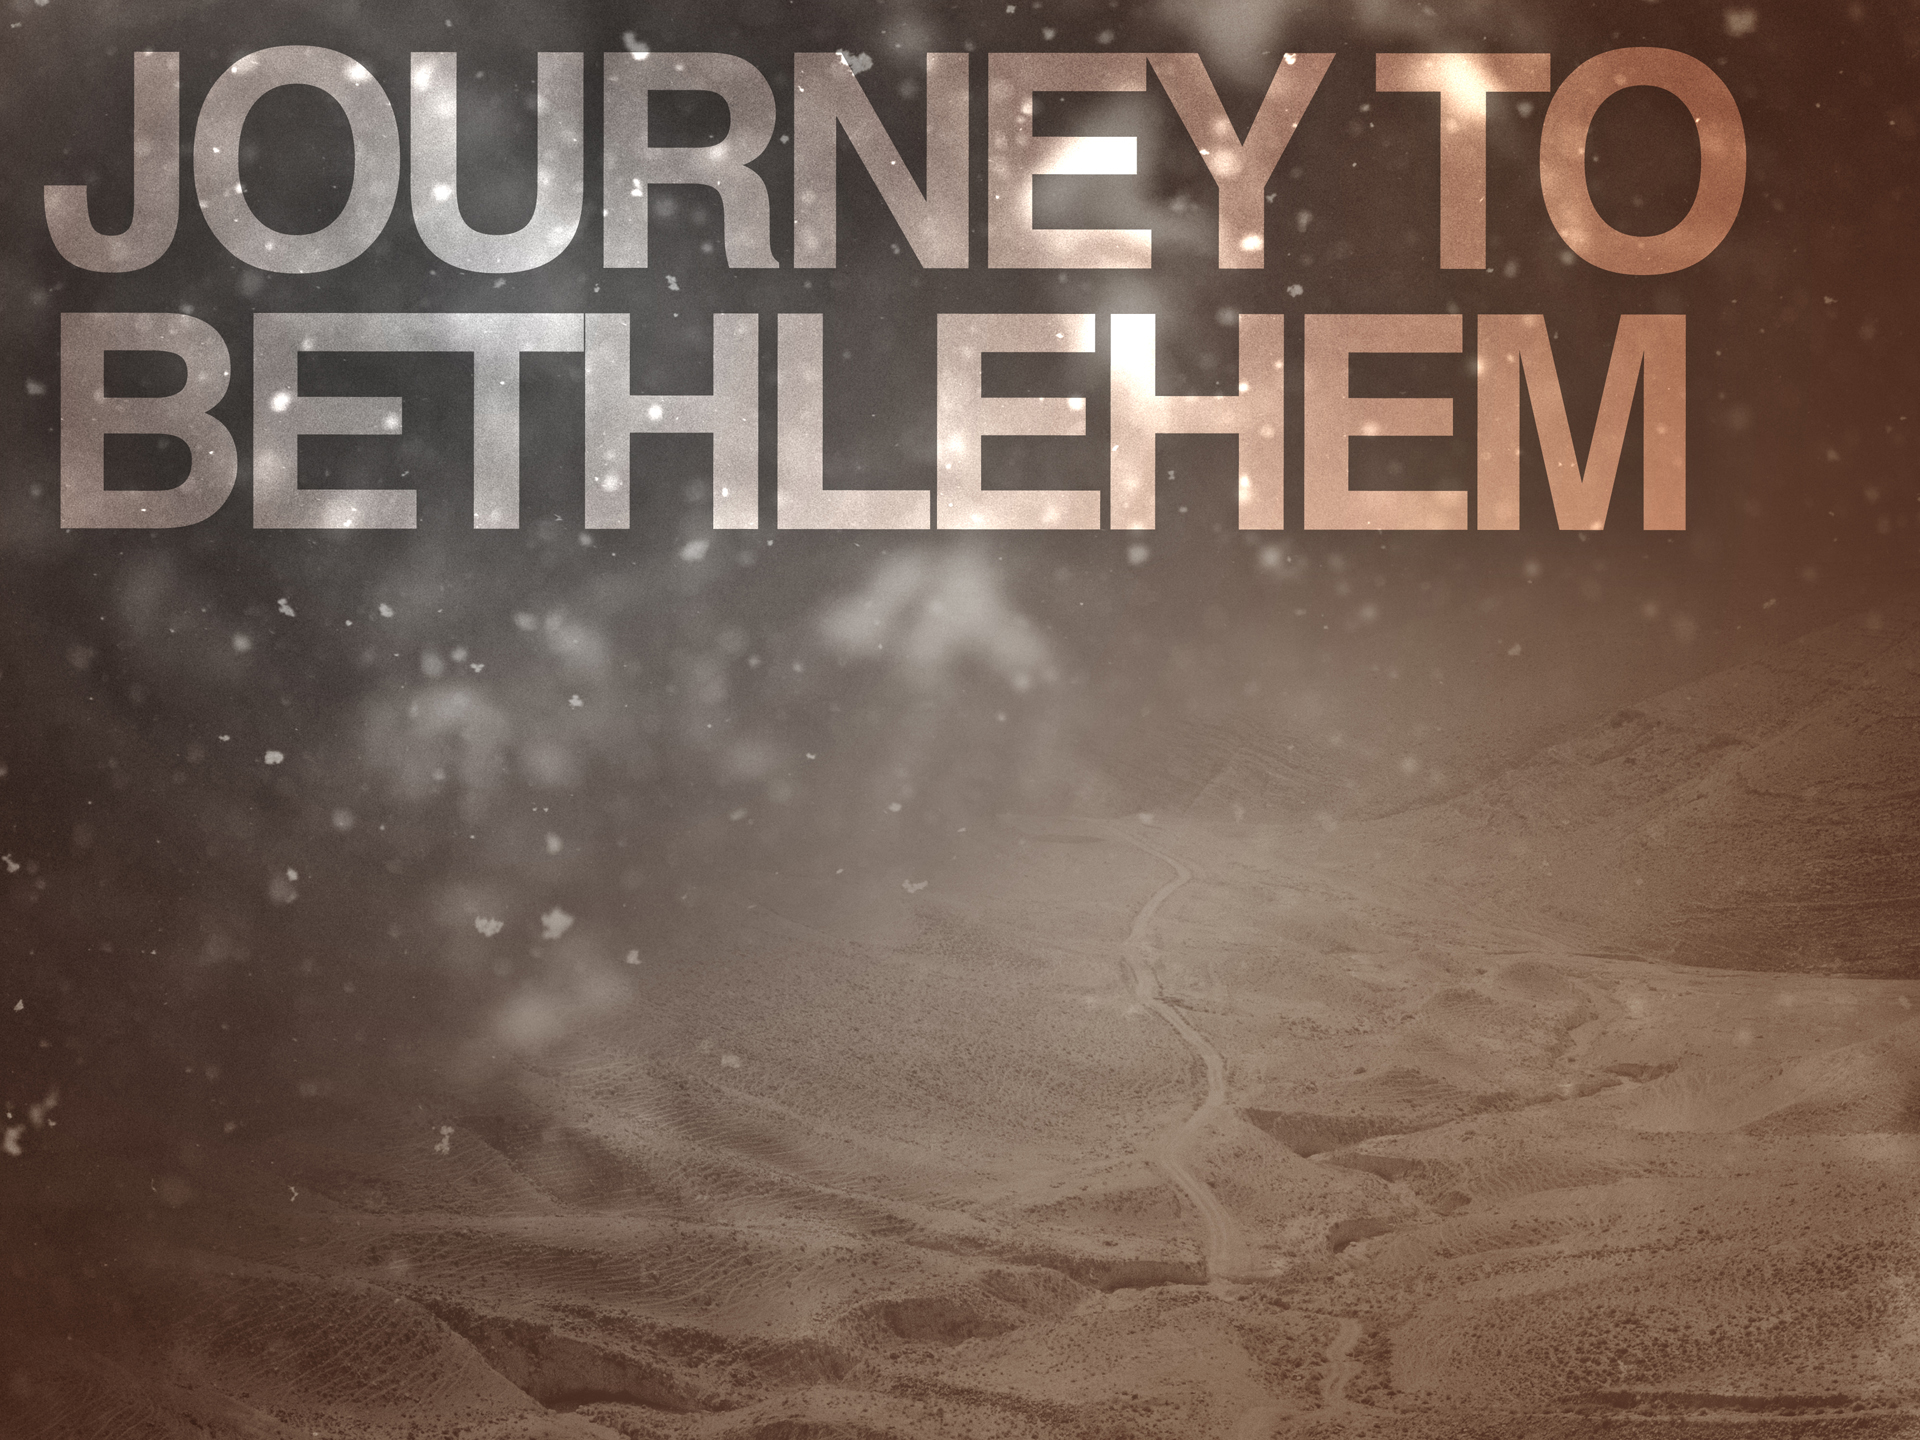 Journey to Bethlehem | TripleWide Media